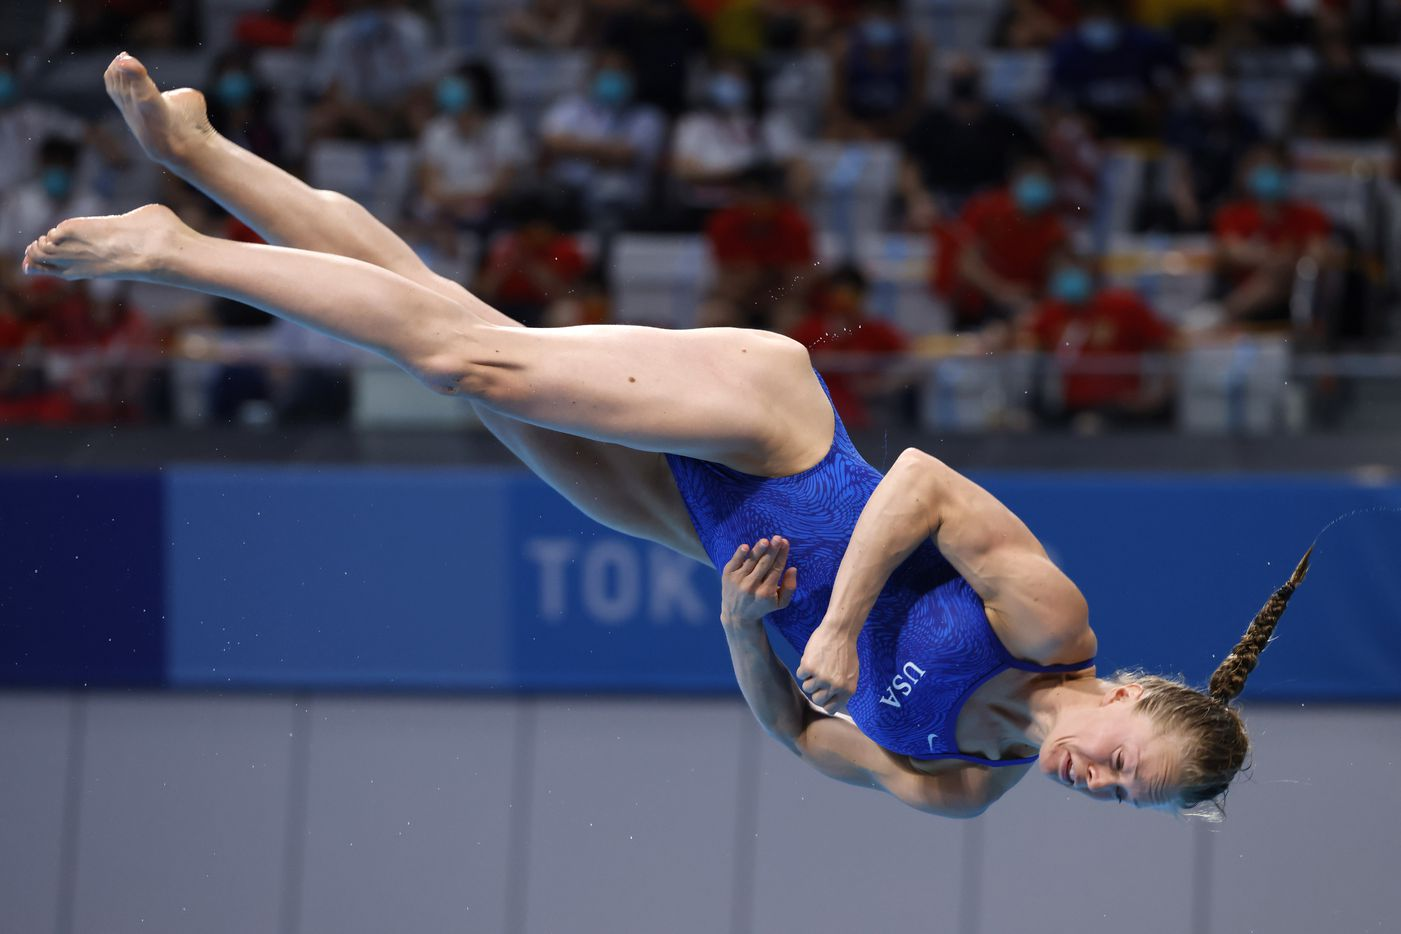 USA's Krysta Palmer dives in the women's 3 meter springboard final during the postponed 2020 Tokyo Olympics at Tokyo Aquatics Centre, on Sunday, August 1, 2021, in Tokyo, Japan. Palmer finished 3rd with a total score of 343.75 to earn a bronze medal. (Vernon Bryant/The Dallas Morning News)